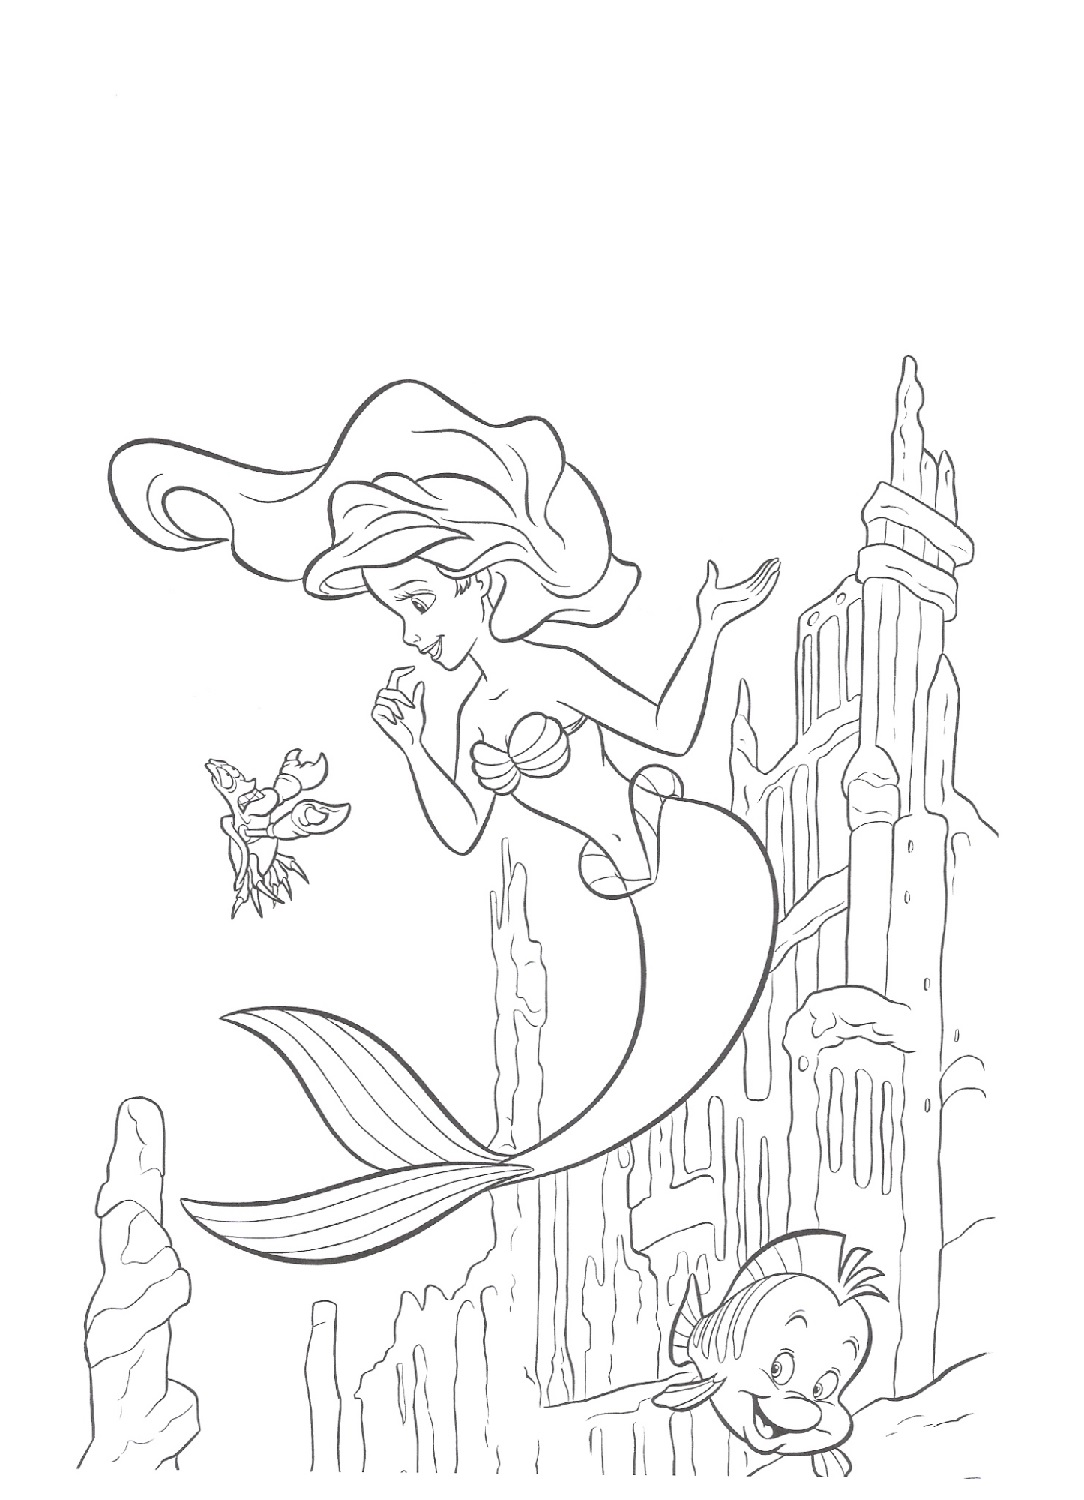 little-mermaid-activities-coloring